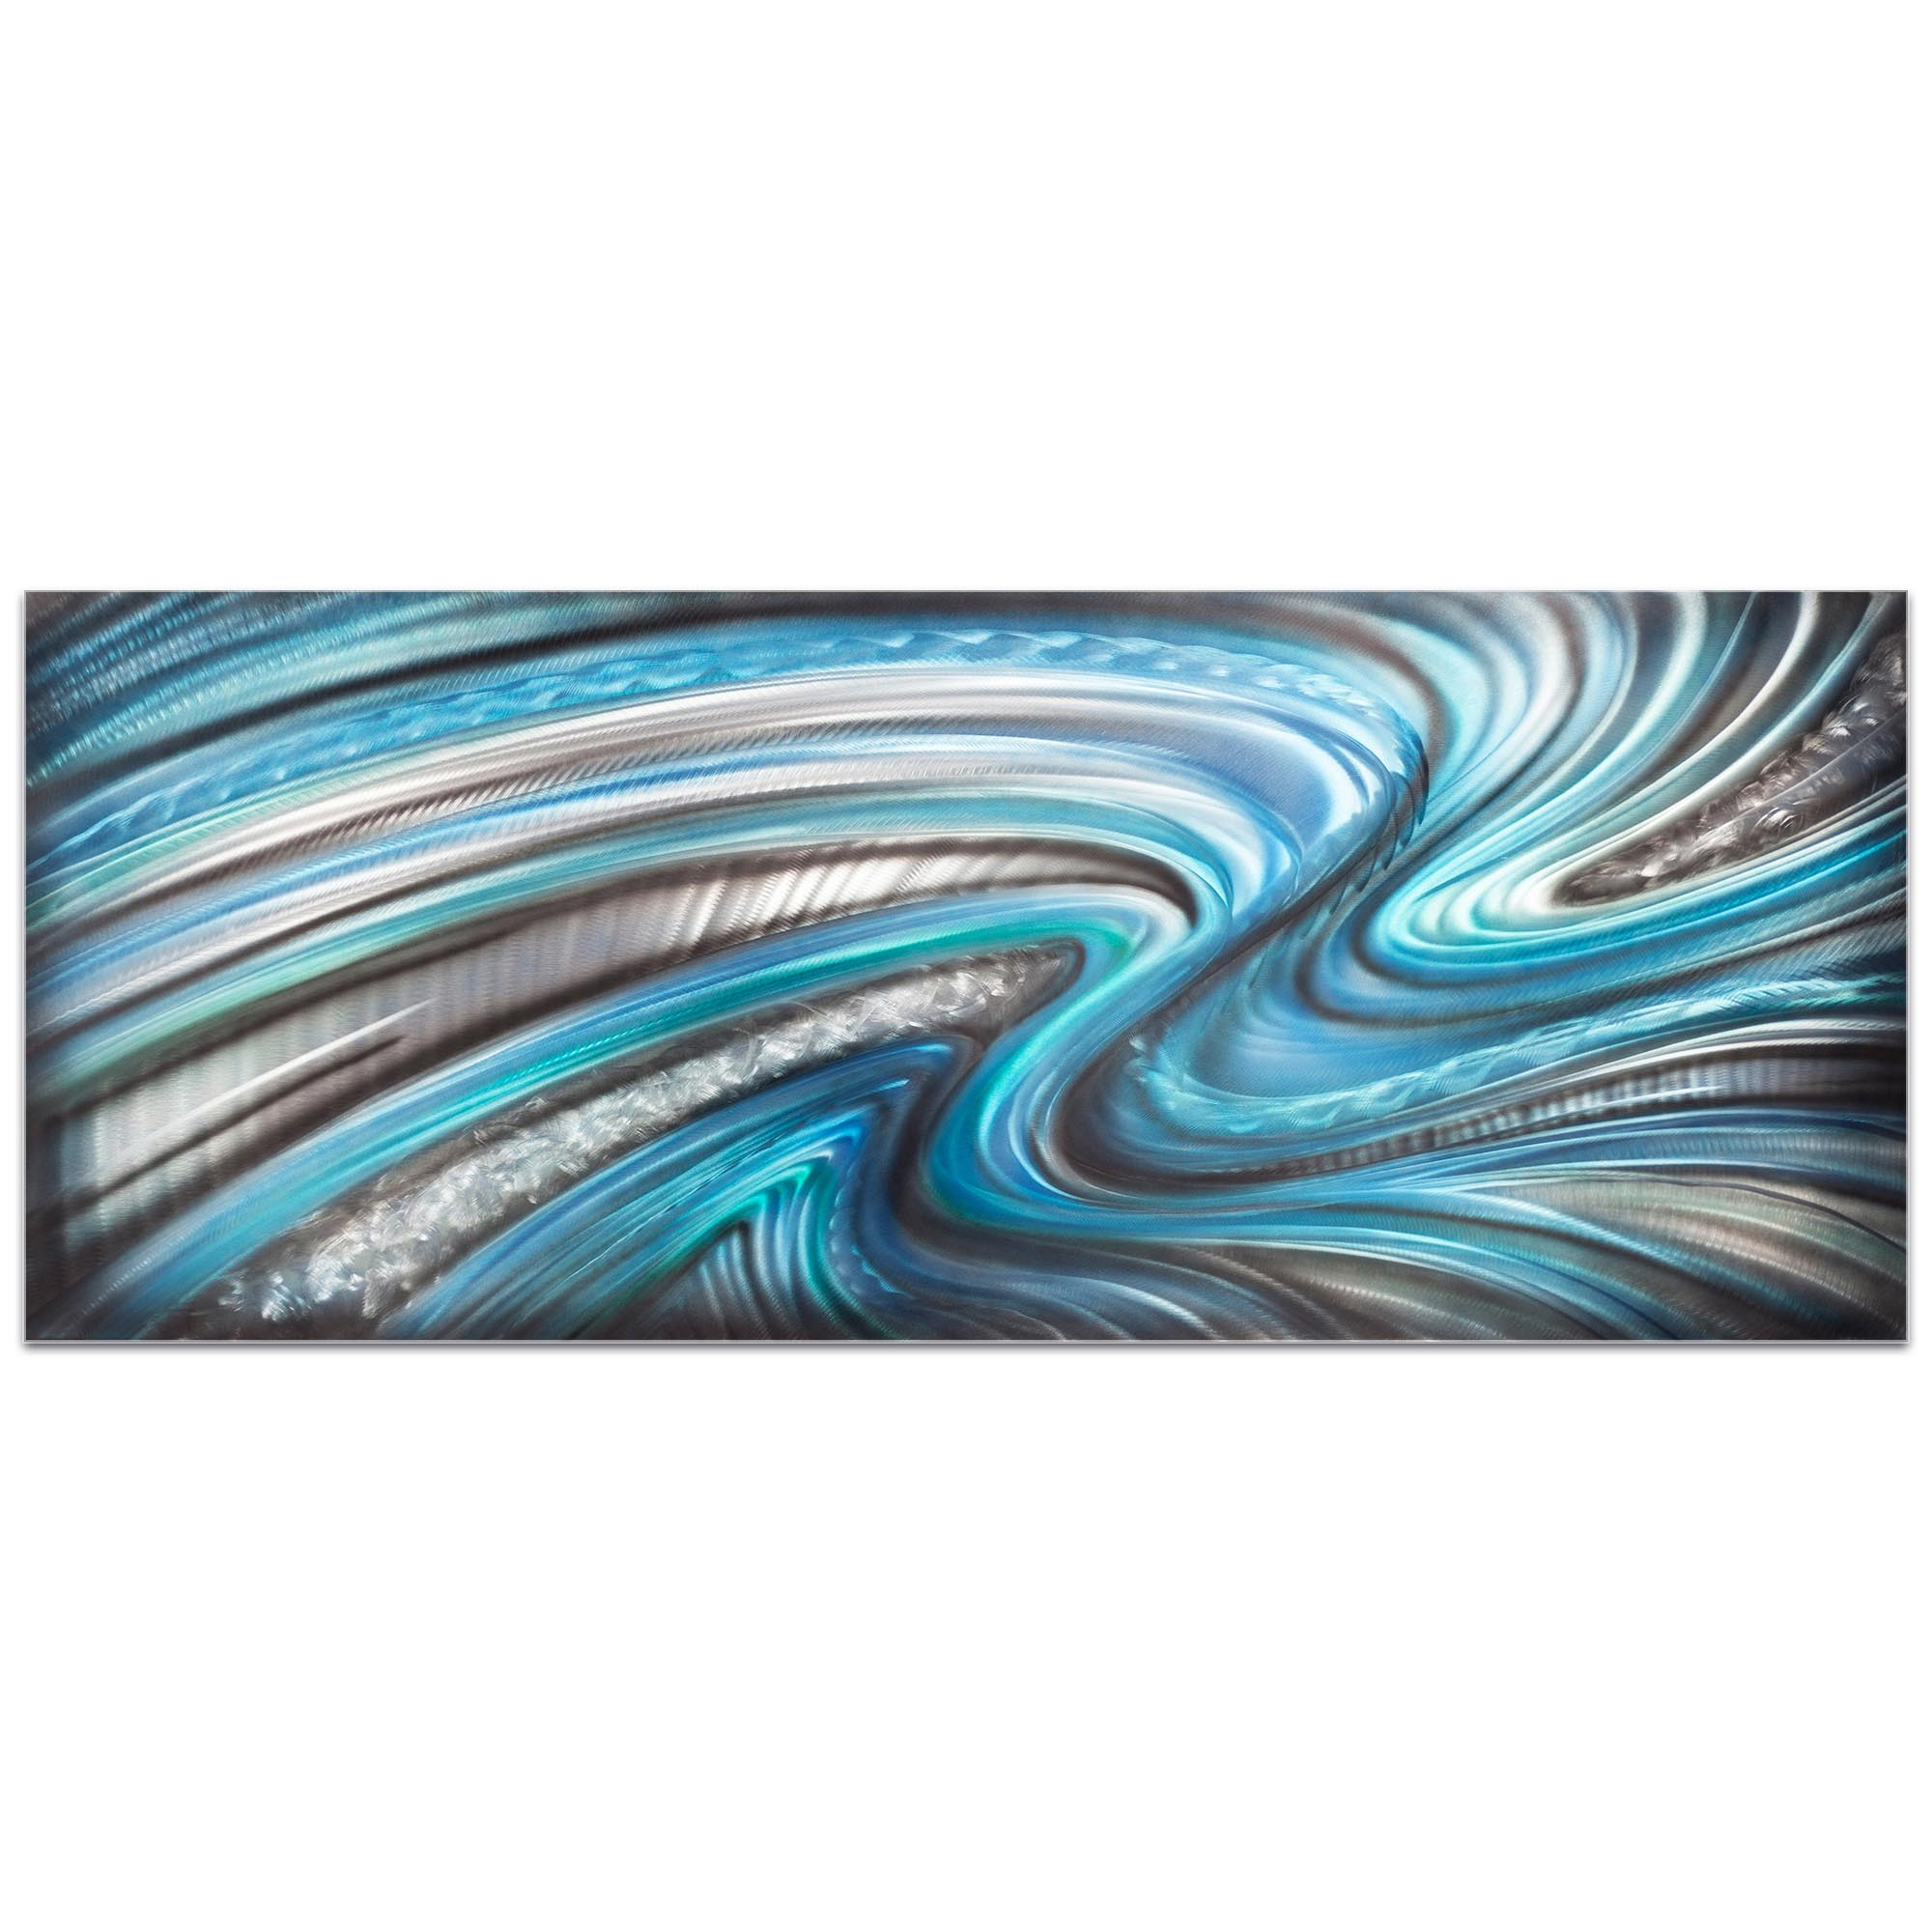 Abstract Wall Art 'Beyond the Waves' - Urban Decor on Metal or Plexiglass - Image 2